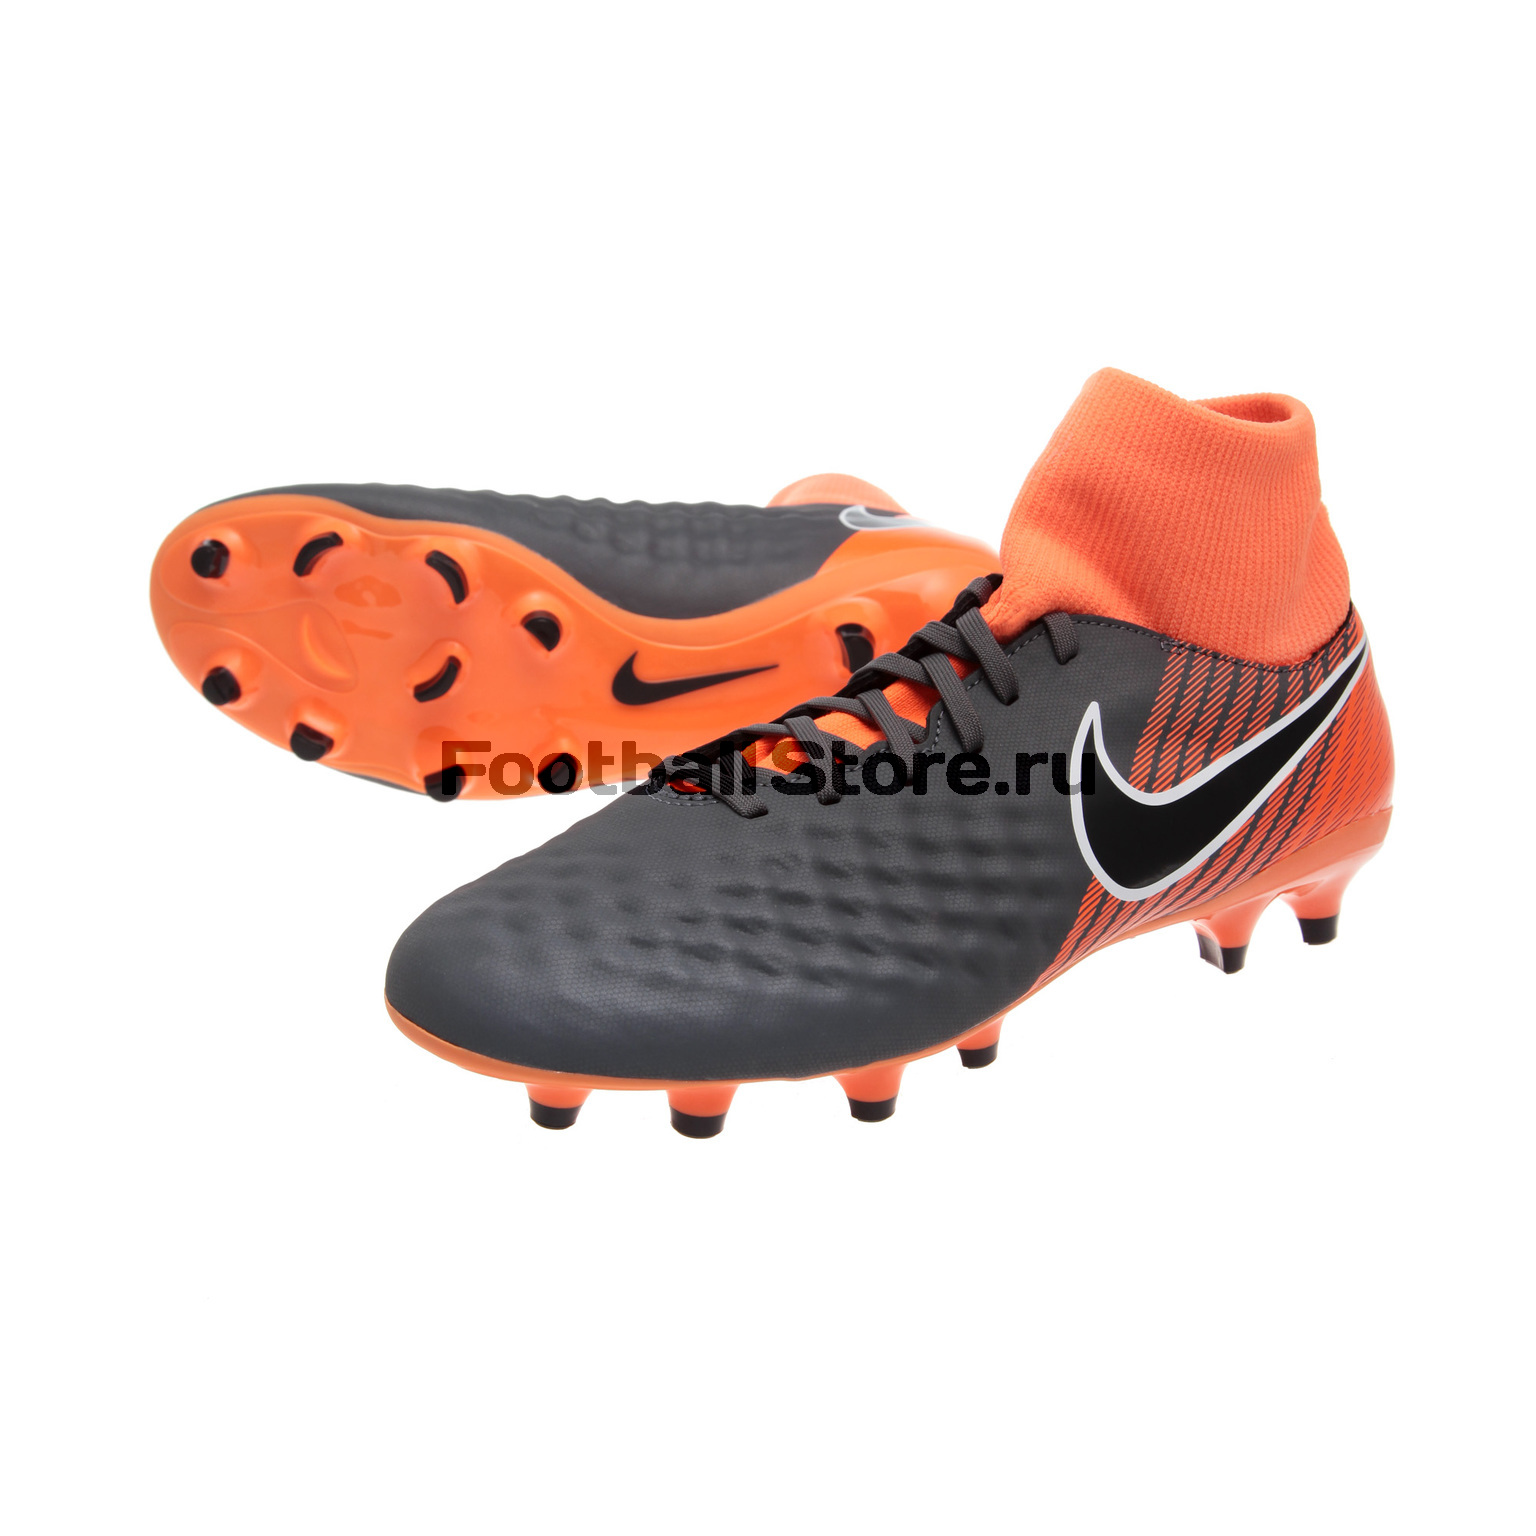 Бутсы Nike Obra 2 Academy DF FG AH7303-080 бутсы nike superfly academy gs cr7 jr fg mg aj3111 390